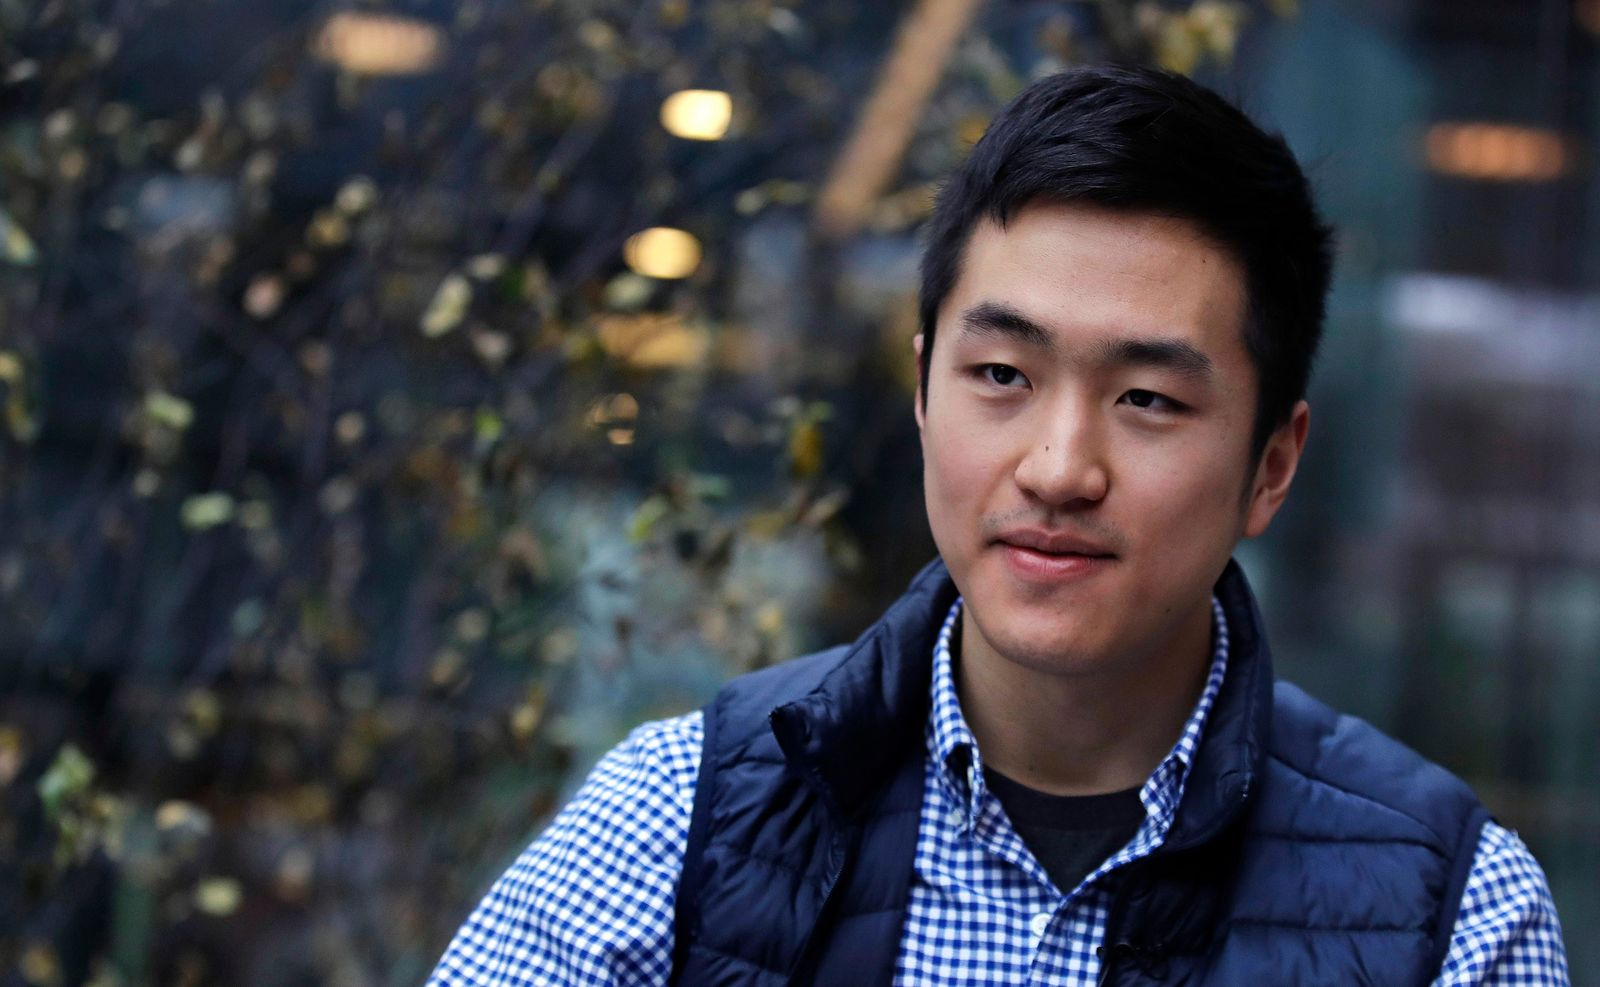 FILE - Harvard University graduate Jin K. Park, who holds a degree in molecular and cellular biology, listens during an interview in Cambridge, Mass., Thursday, Dec. 13, 2018. Park, who was named a Rhodes Scholar along with 30 other Americans in November, entered the U.S. illegally as a child, moving to Queens borough of New York City with his family. The undocumented student participates in the Deferred Action for Childhood Arrivals program (DACA). (AP Photo/Charles Krupa)